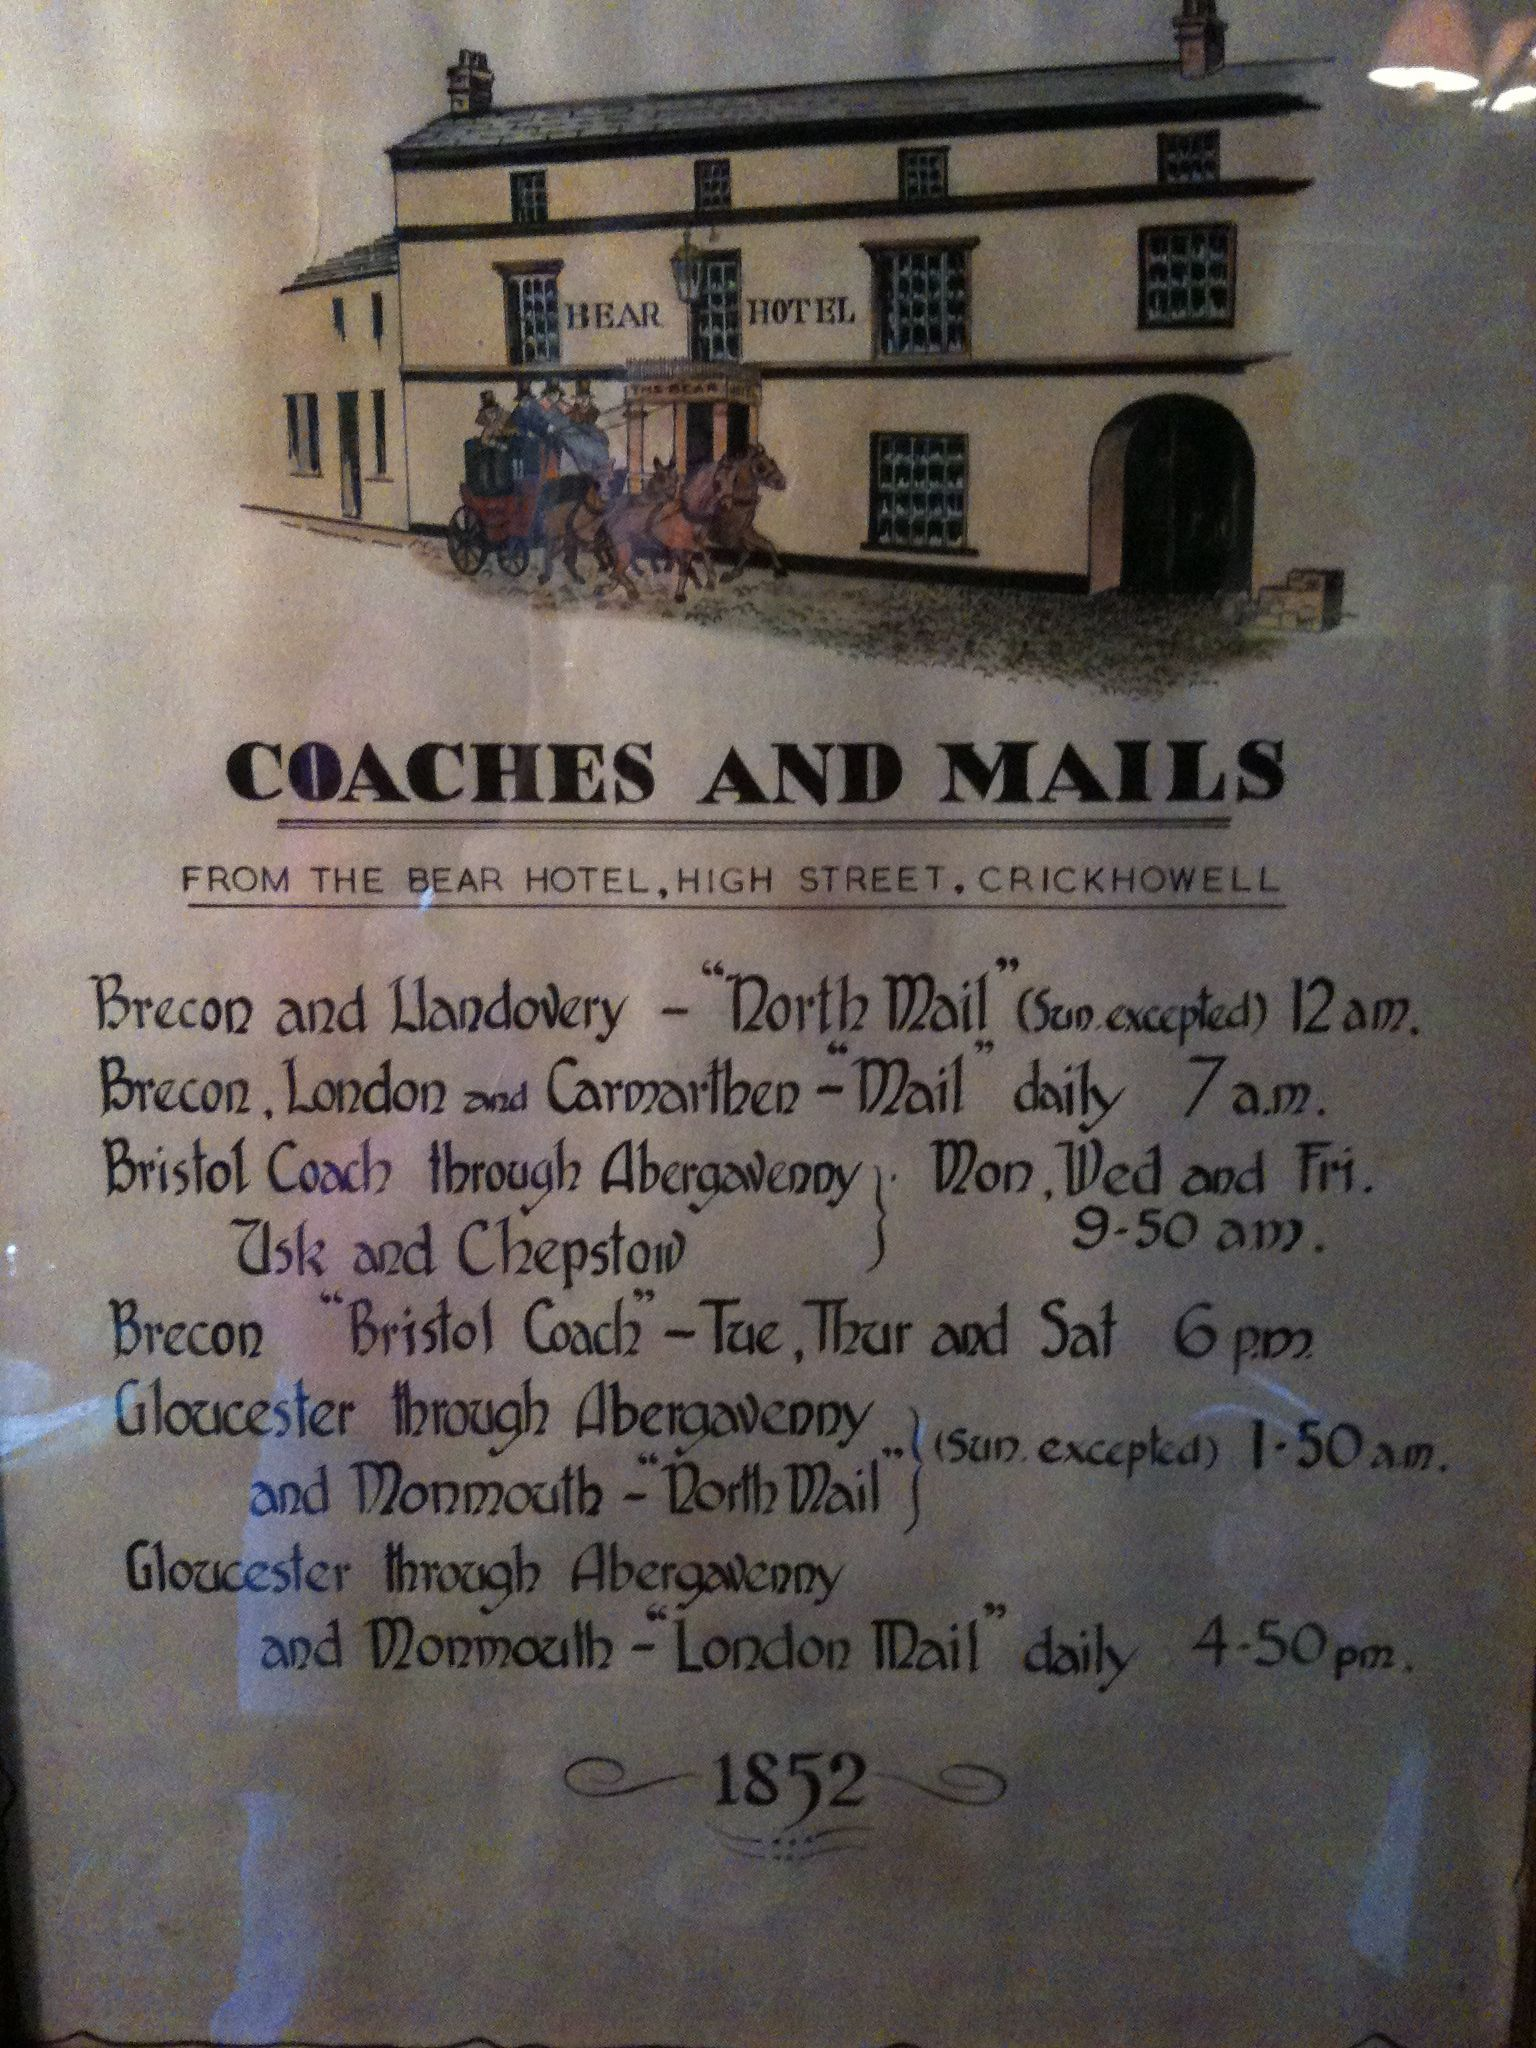 Coaches and mails schedule from the bear hotel high